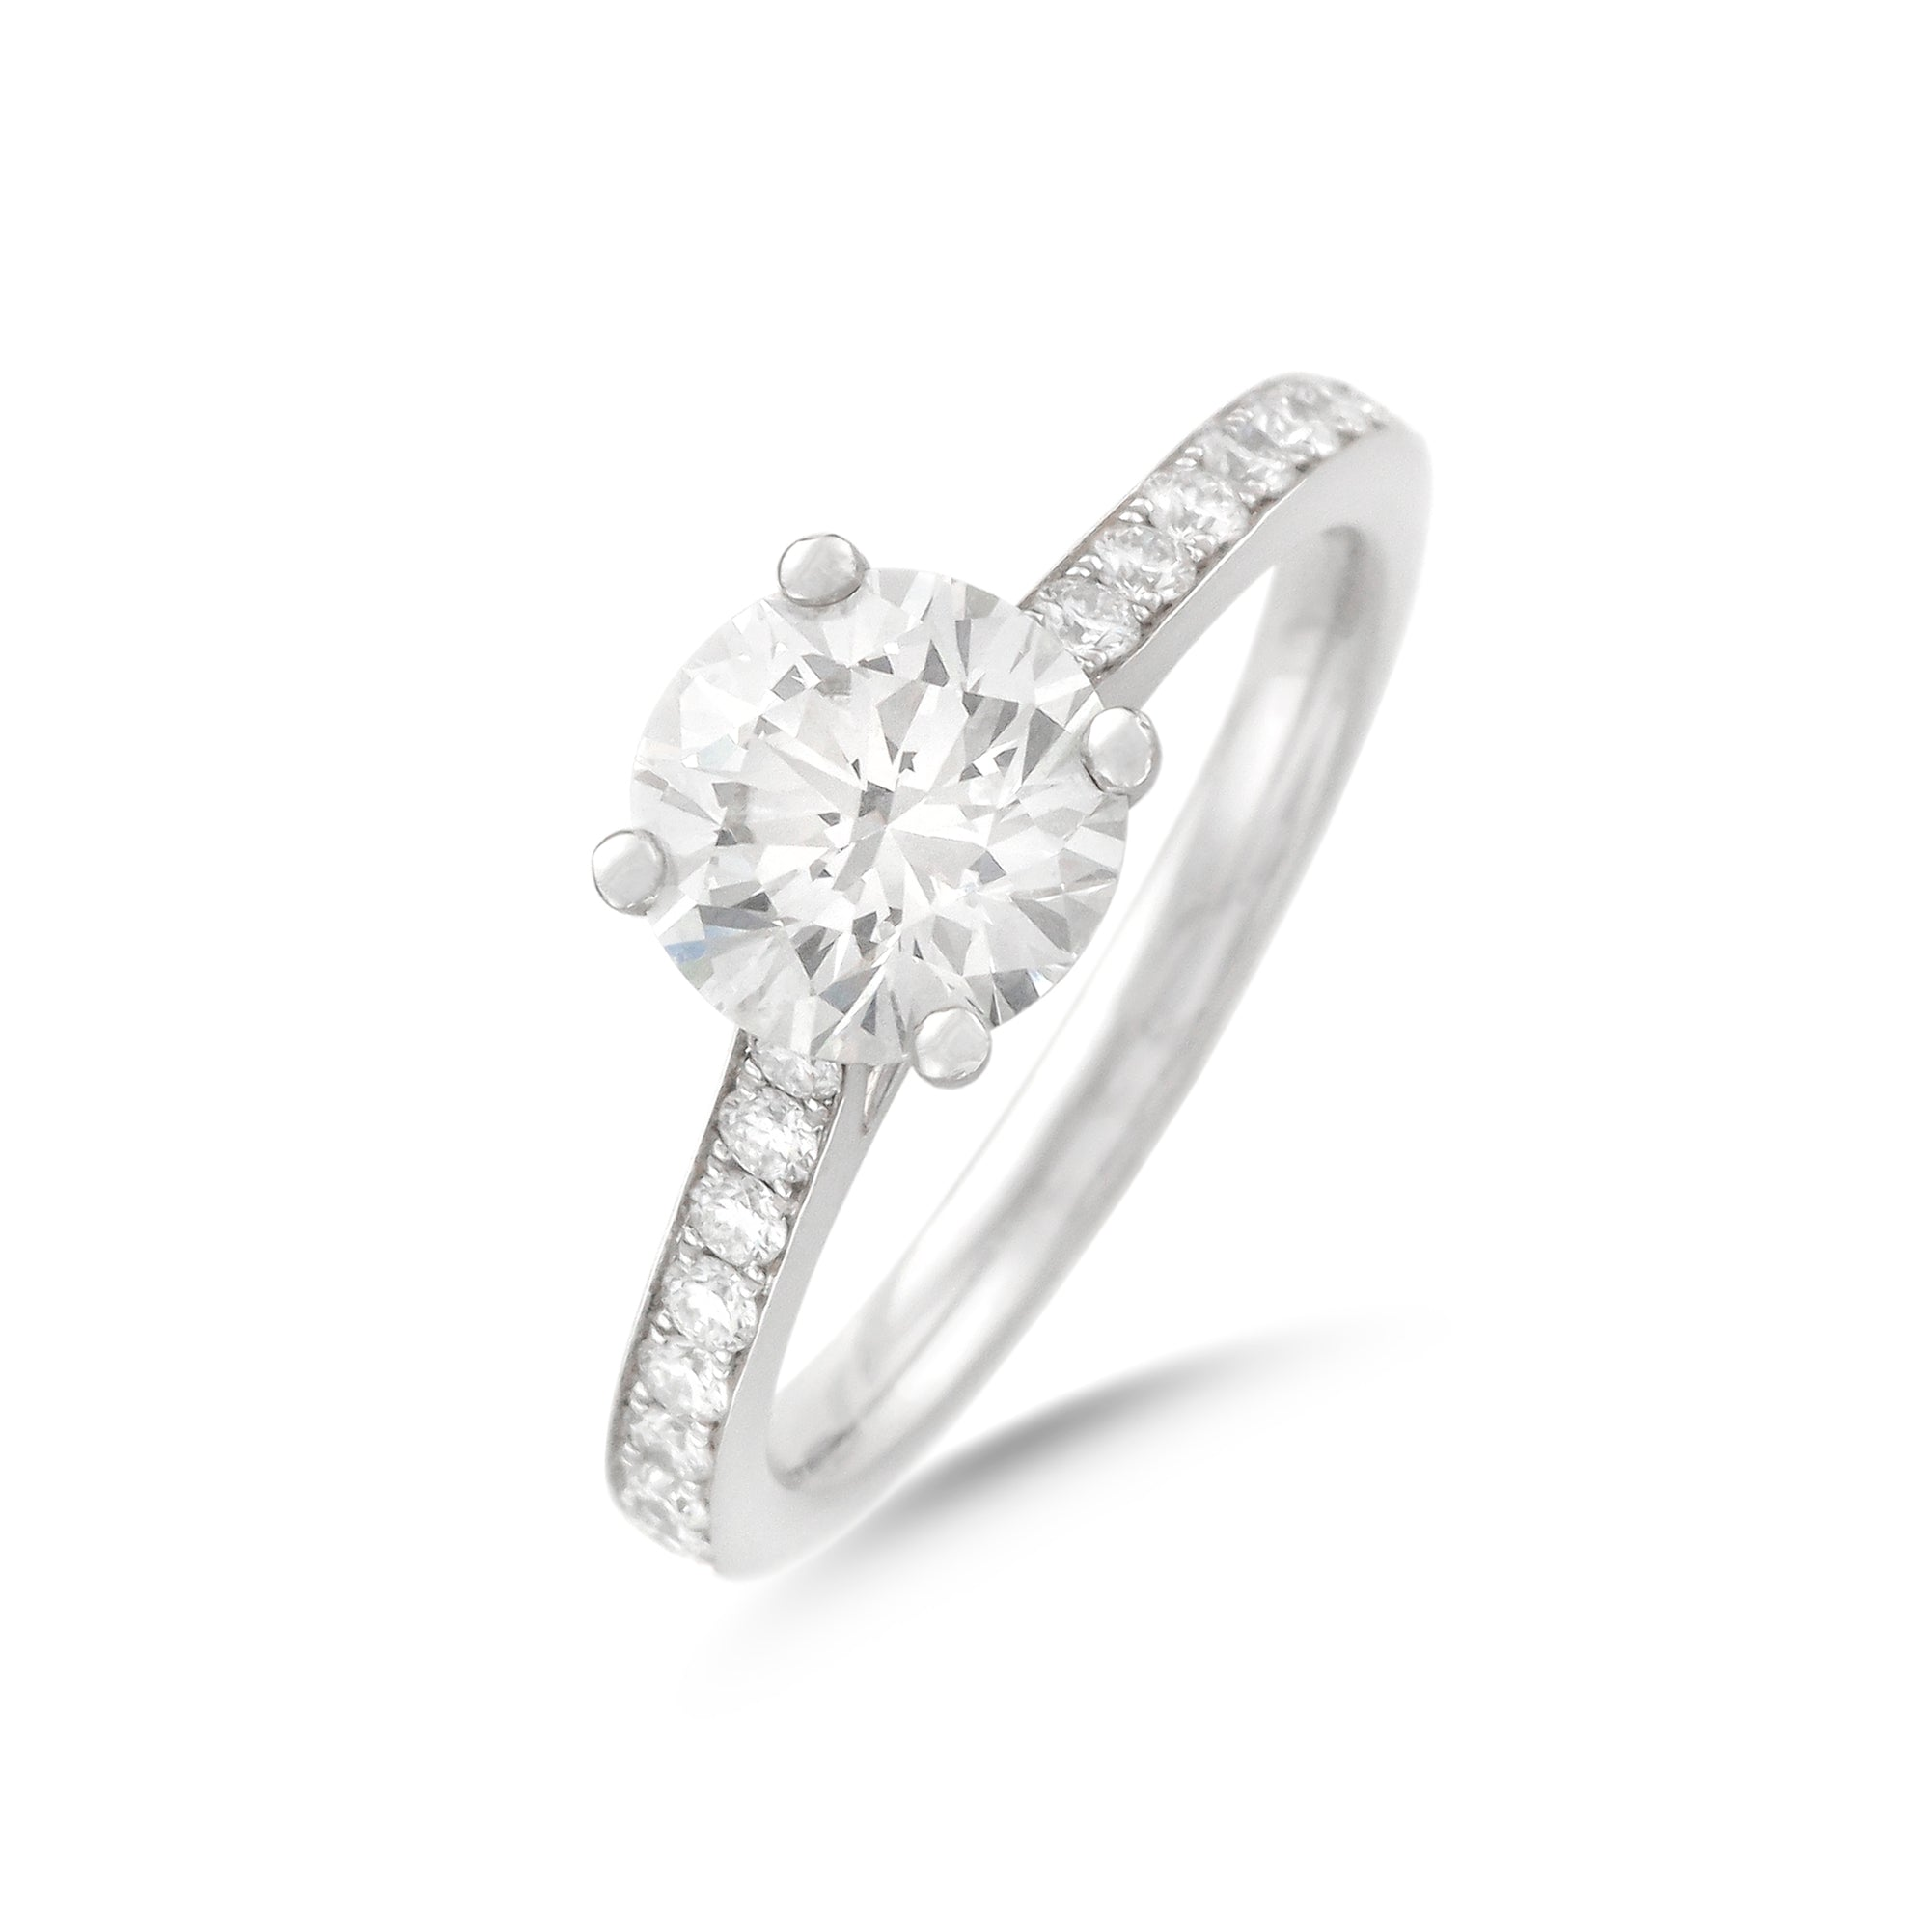 1.52ct Round Brilliant Diamond Engagement Ring